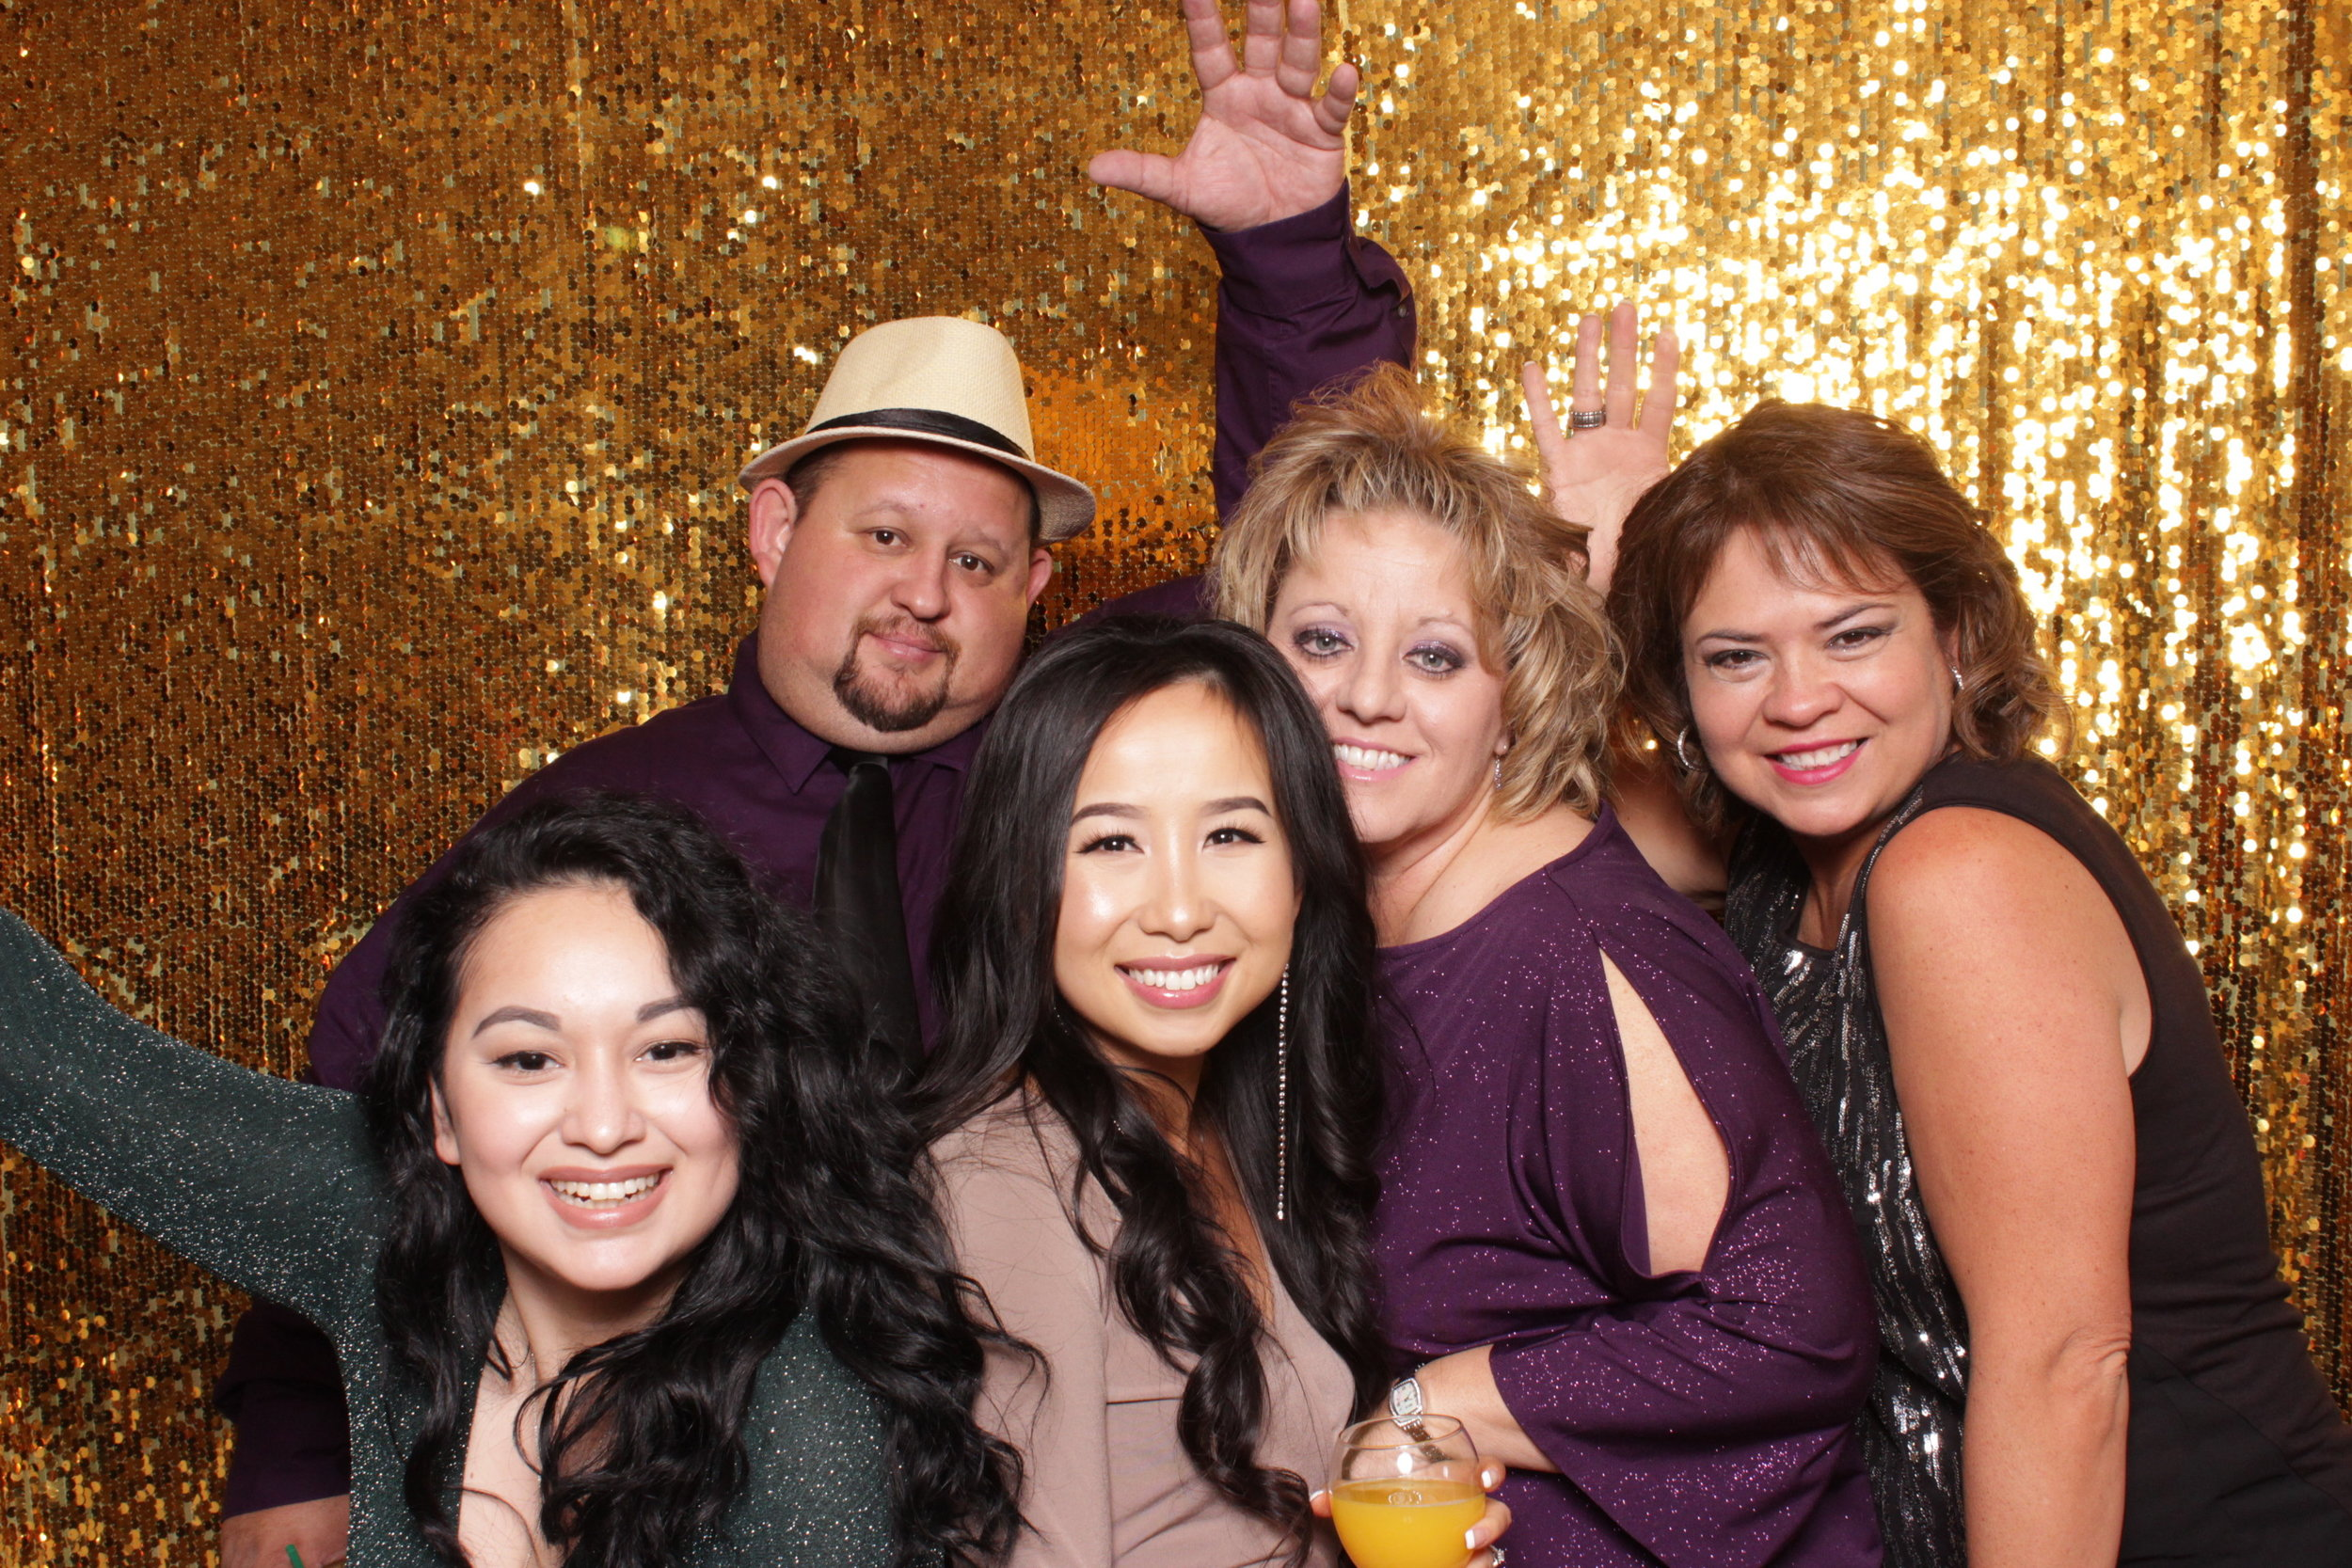 chico-photo-booth-holiday-rush-gold